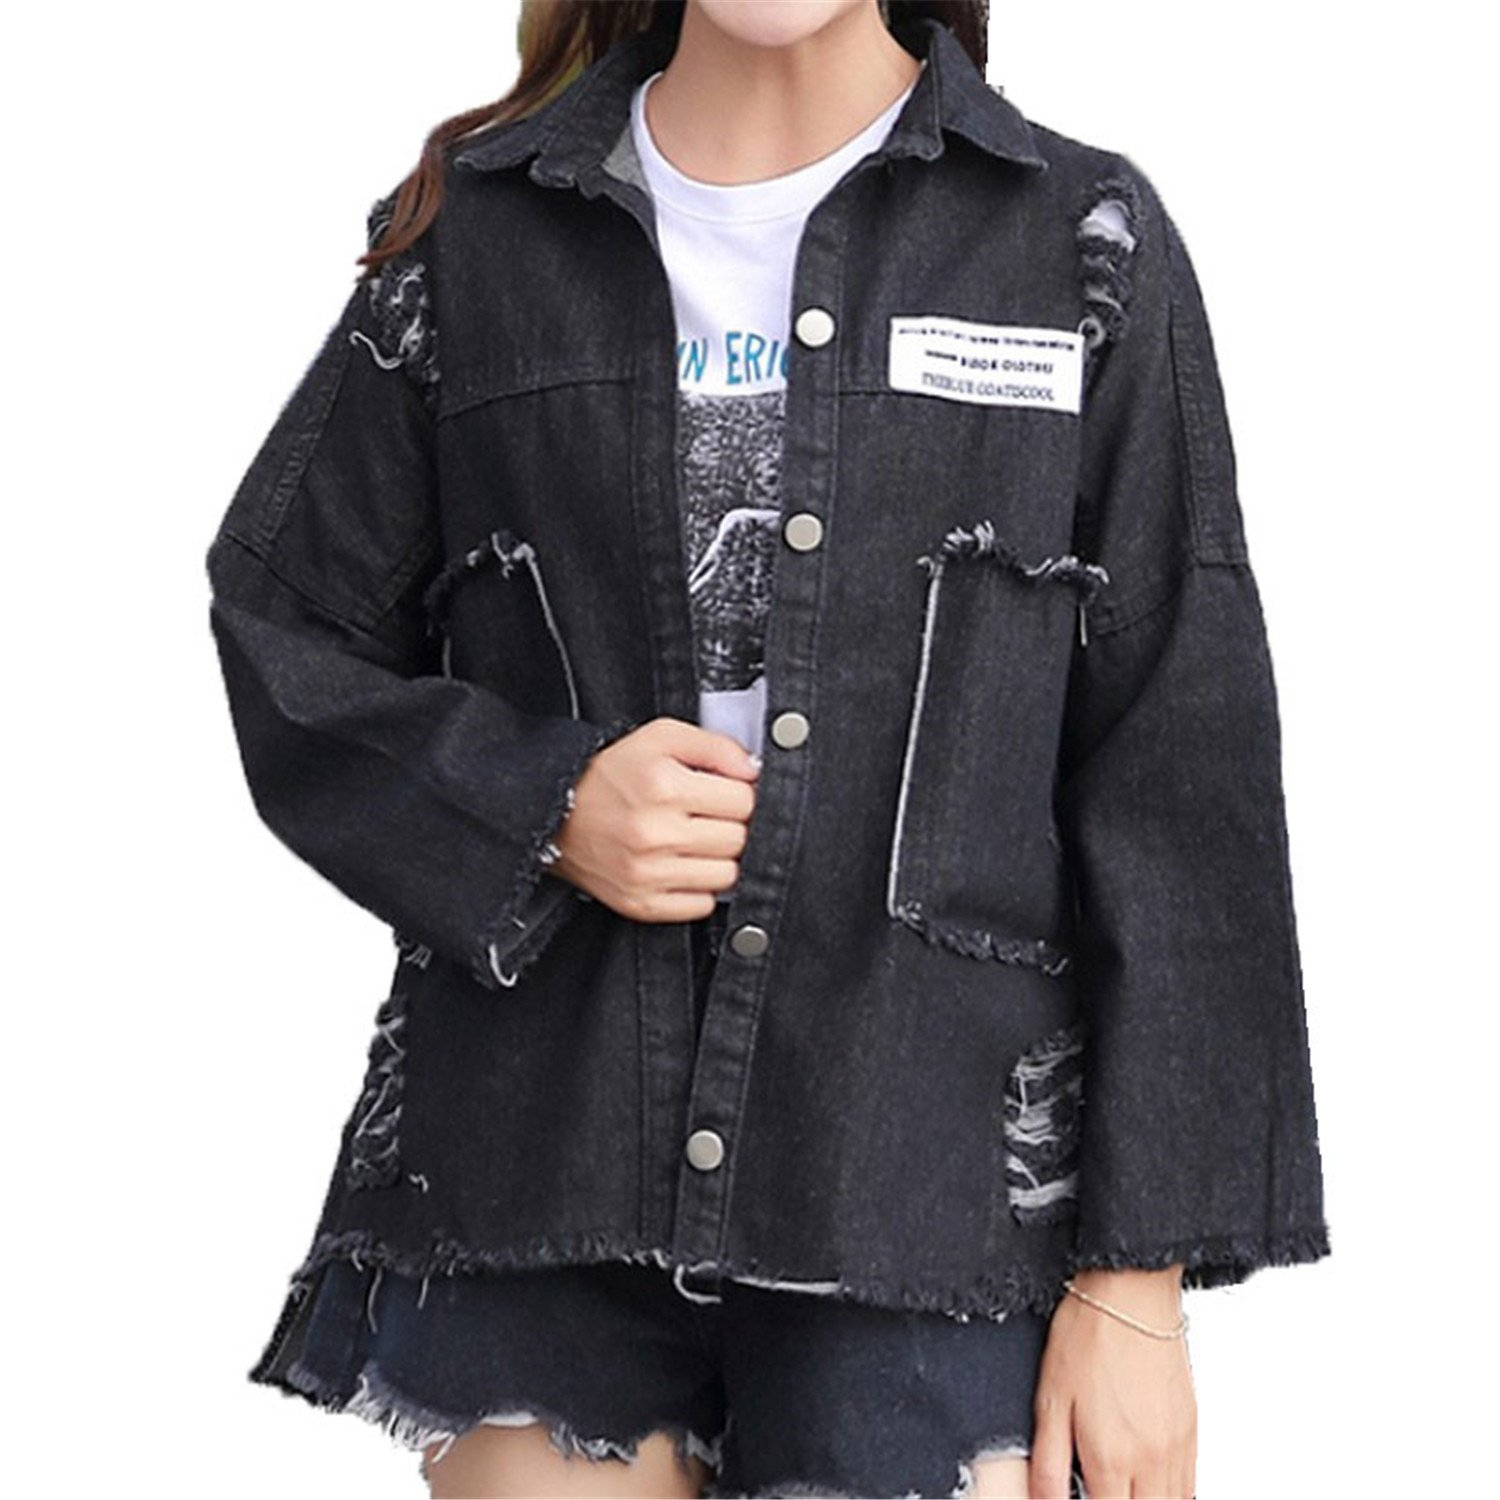 Henraly Oversized Women Patch Designs Ripped Denim Coat Spring Autumn Long Sleeve Feminina 2017 at Amazon Womens Coats Shop